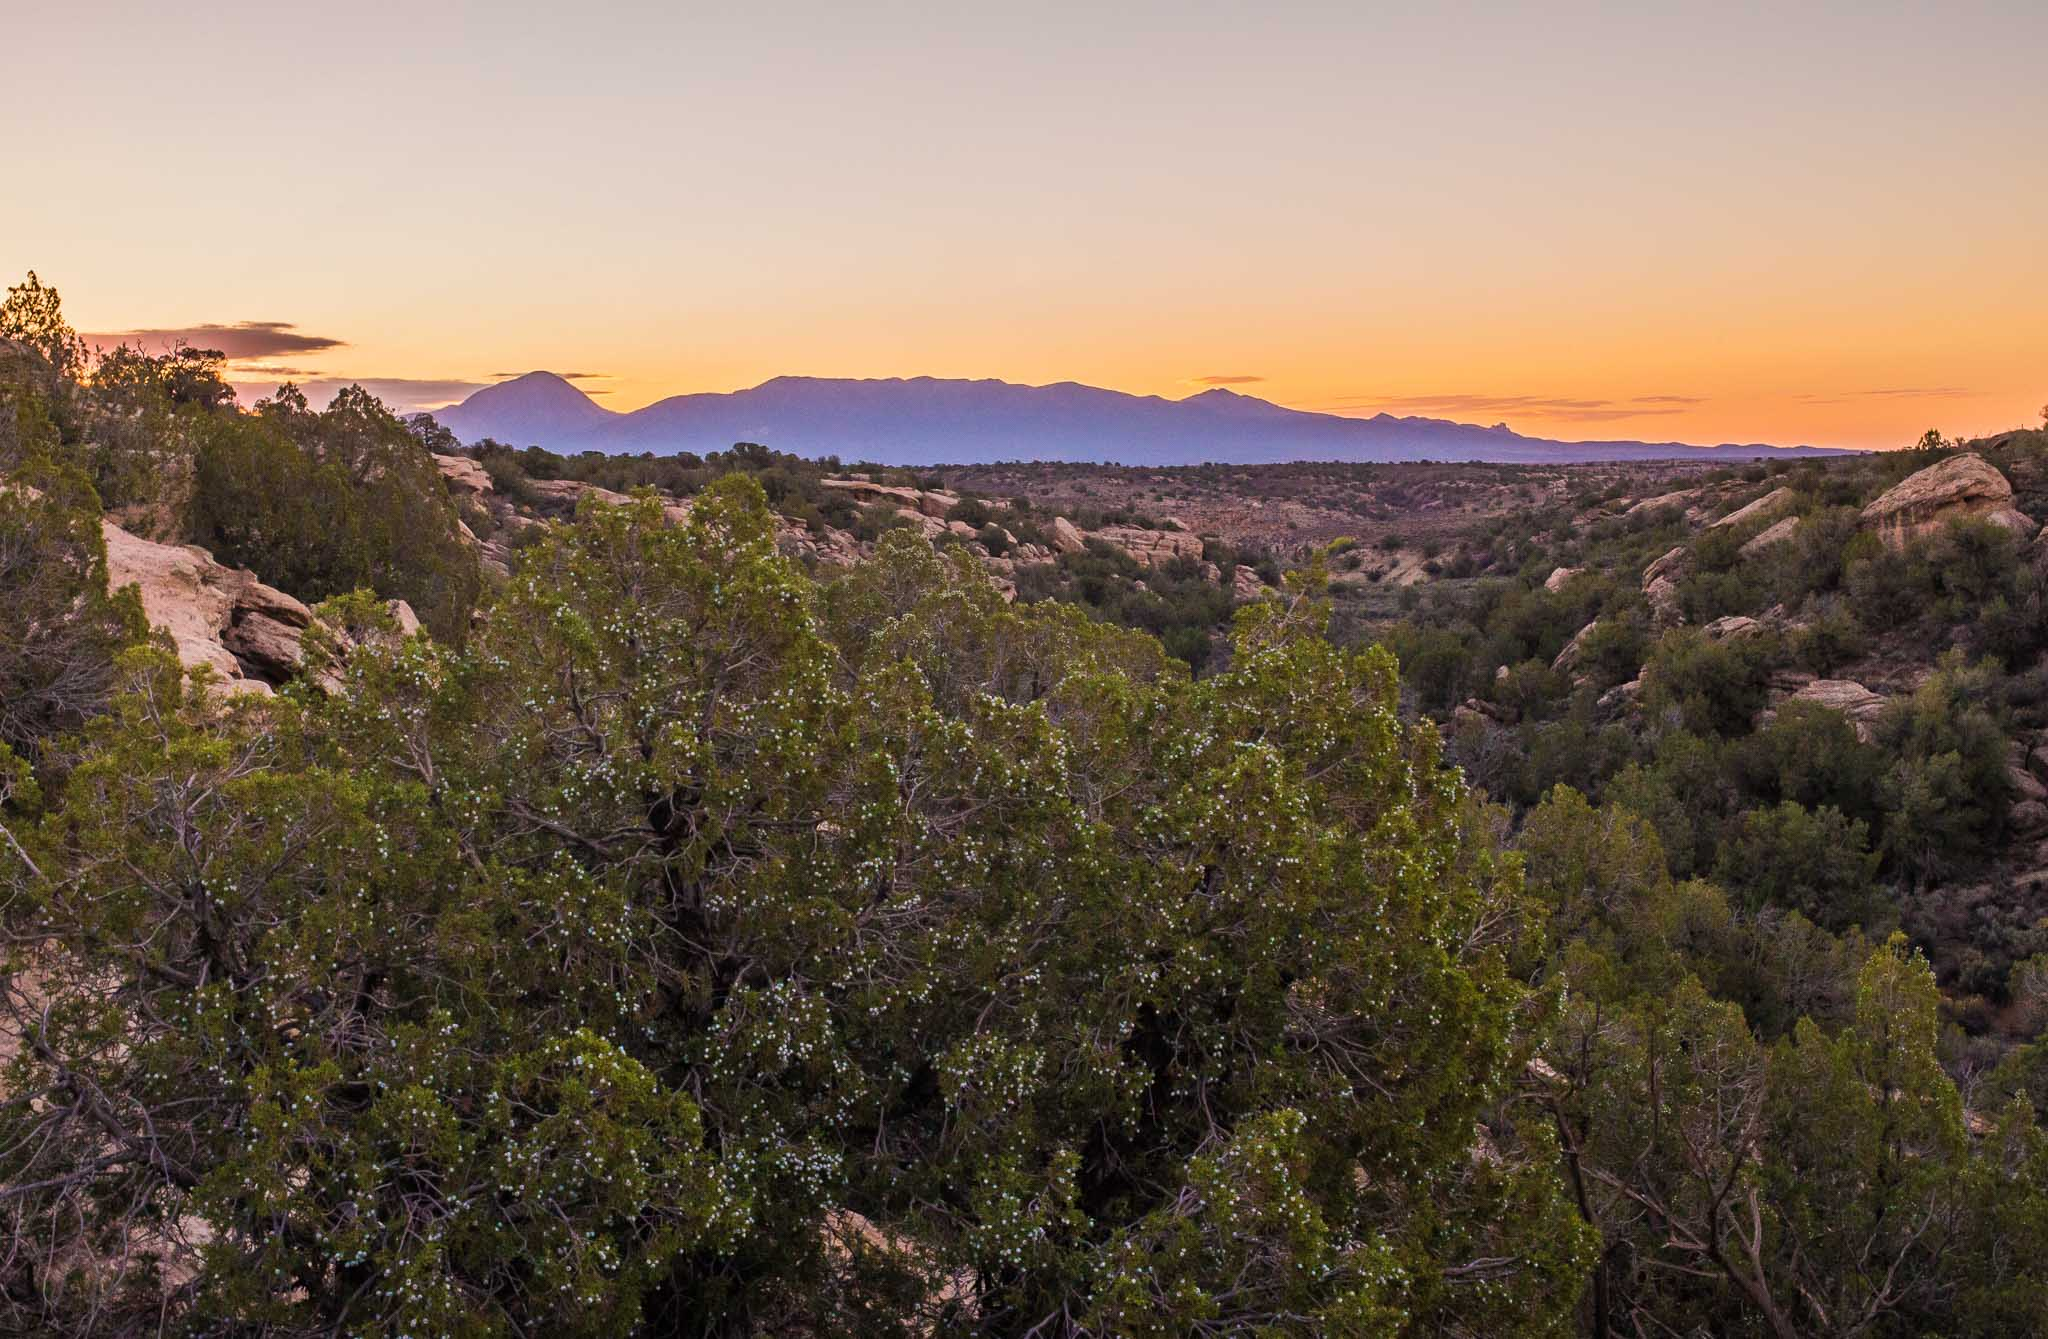 Sleeping Ute Mountain at daybreak taken from Hovenweep National Monument, Aneth UT October 12, 2014